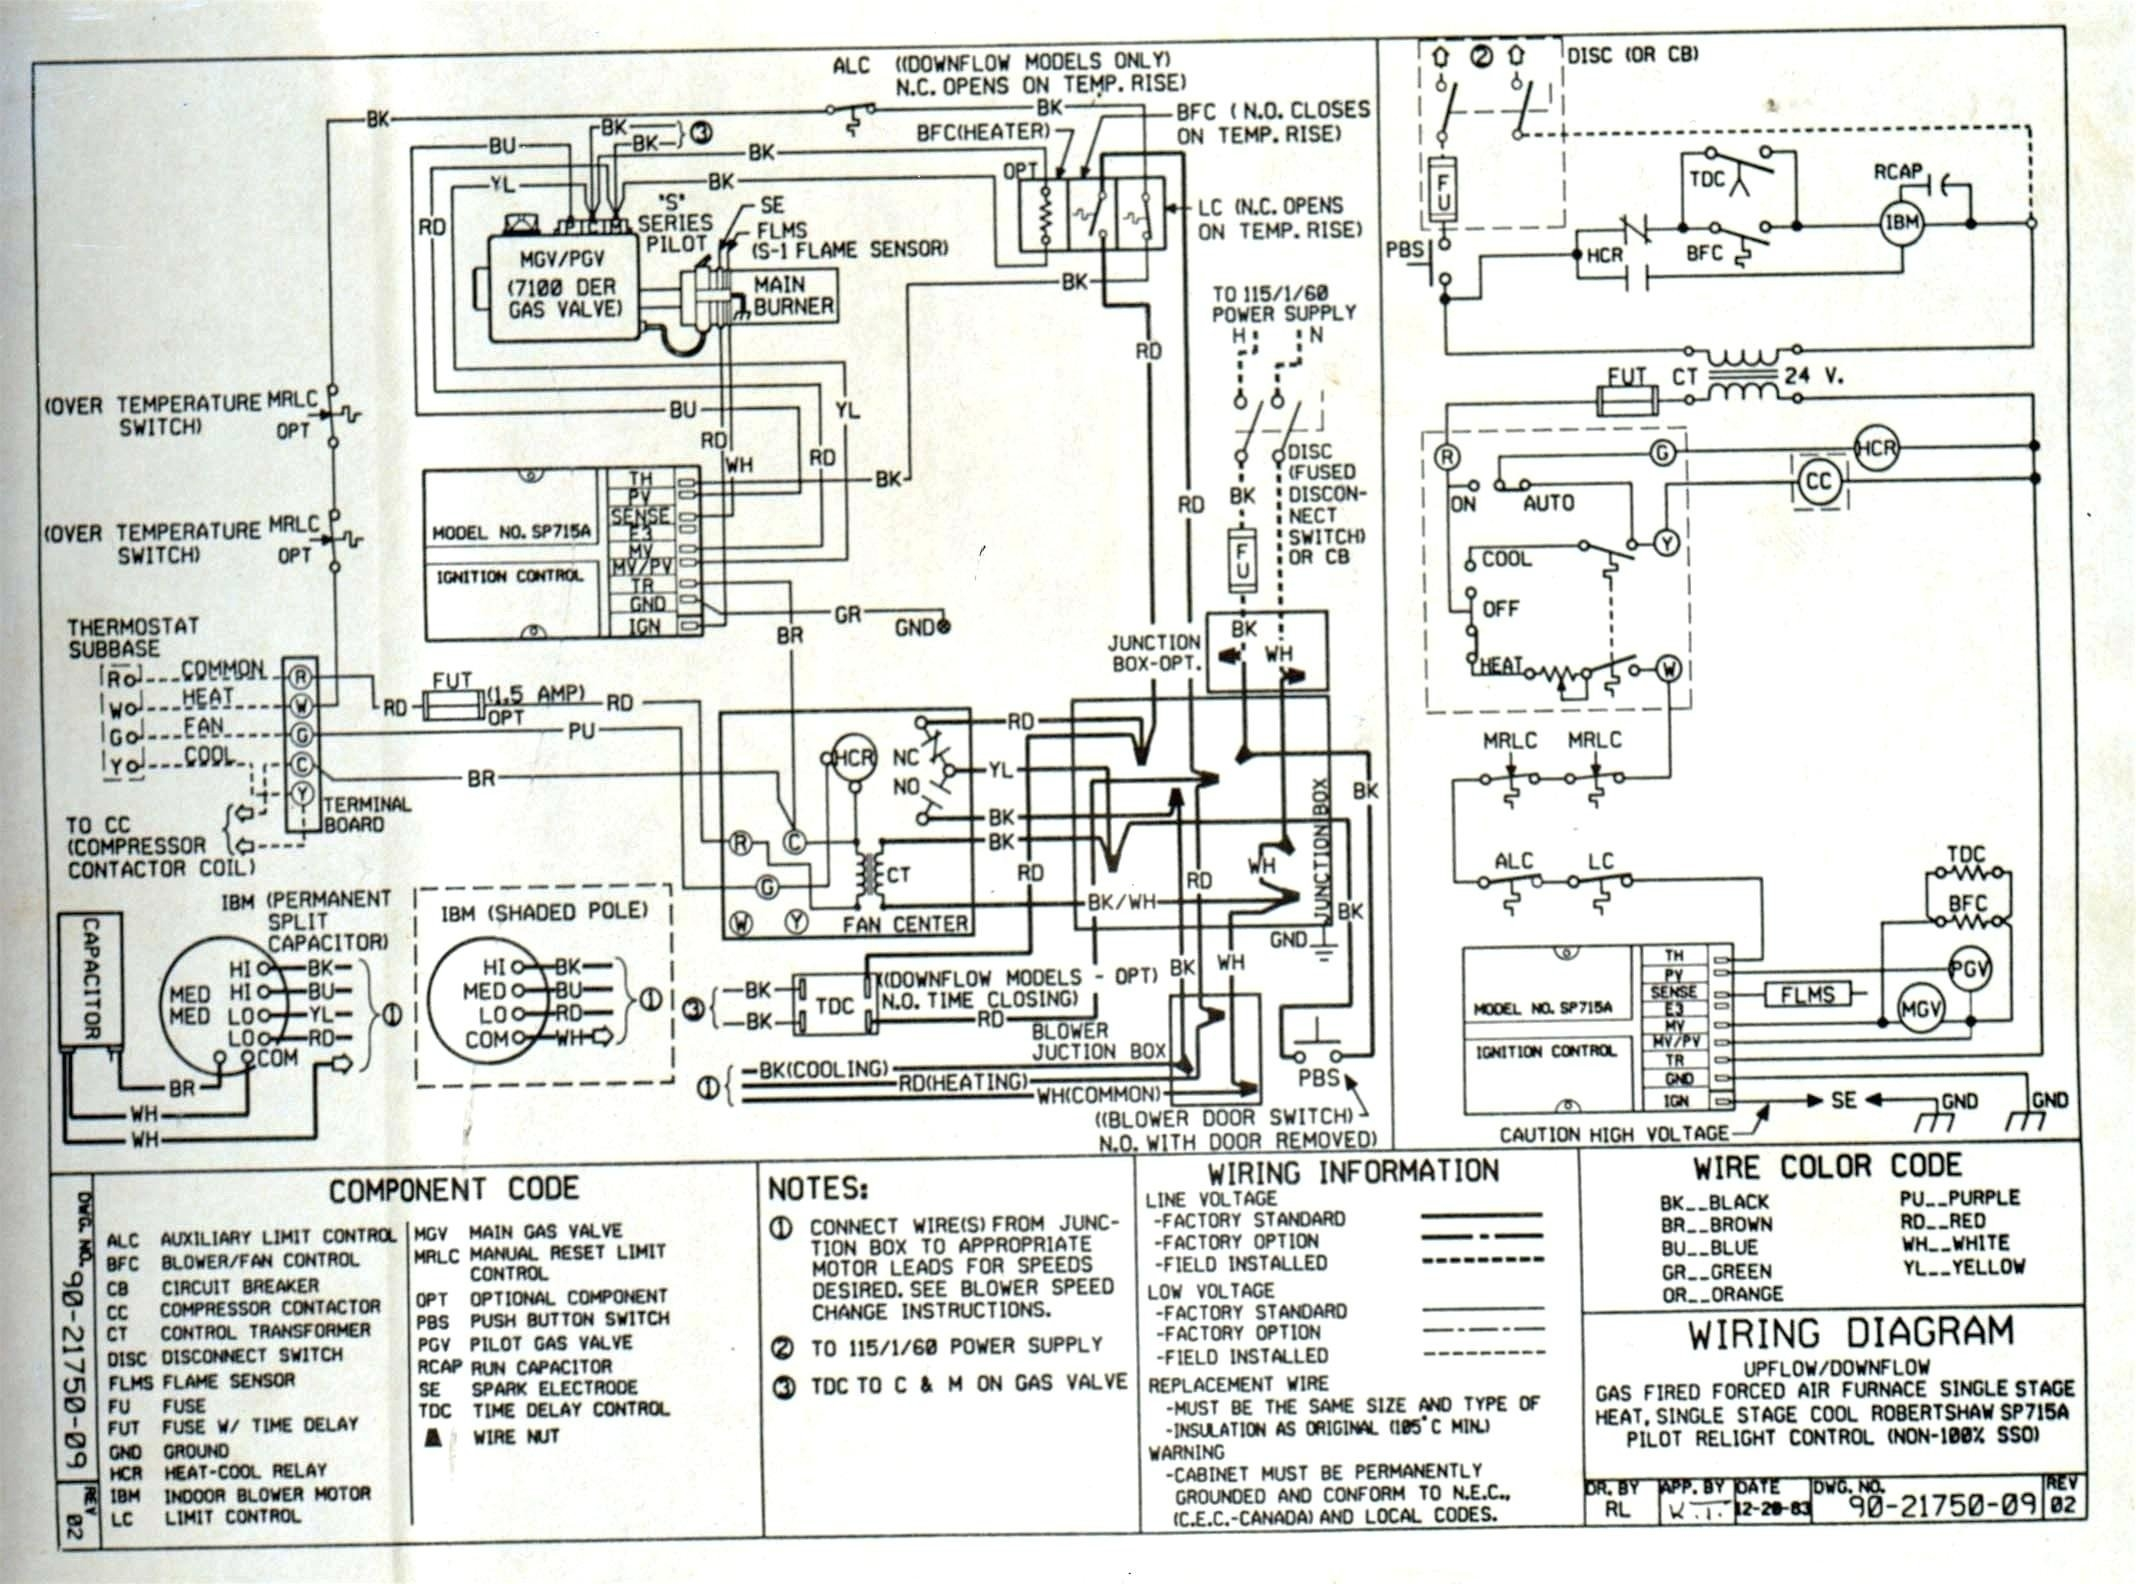 rheem oil furnace wiring diagram Download-Rheem Hvac Wiring Diagram Inspirationa Rheem Wiring Diagram Lovely Diagram Water Dual Element for Wiring 10-o